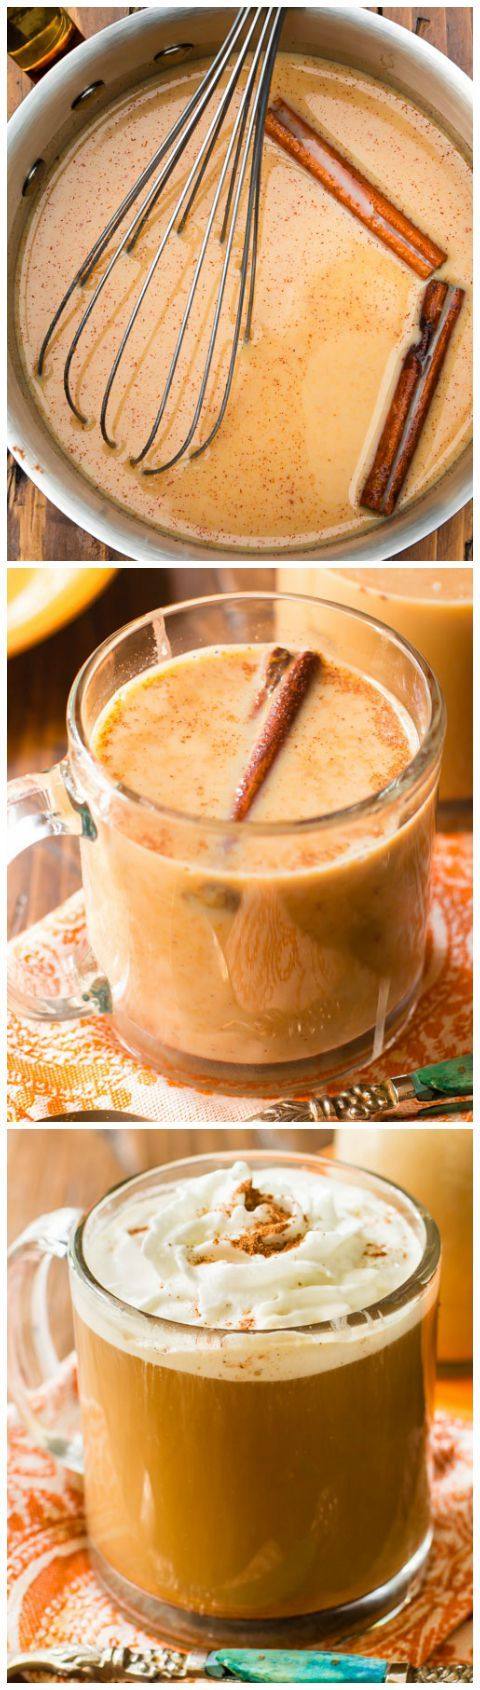 Homemade pumpkin coffee creamer made in 15 minutes with REAL pumpkin puree. Inexpensive and easy!!